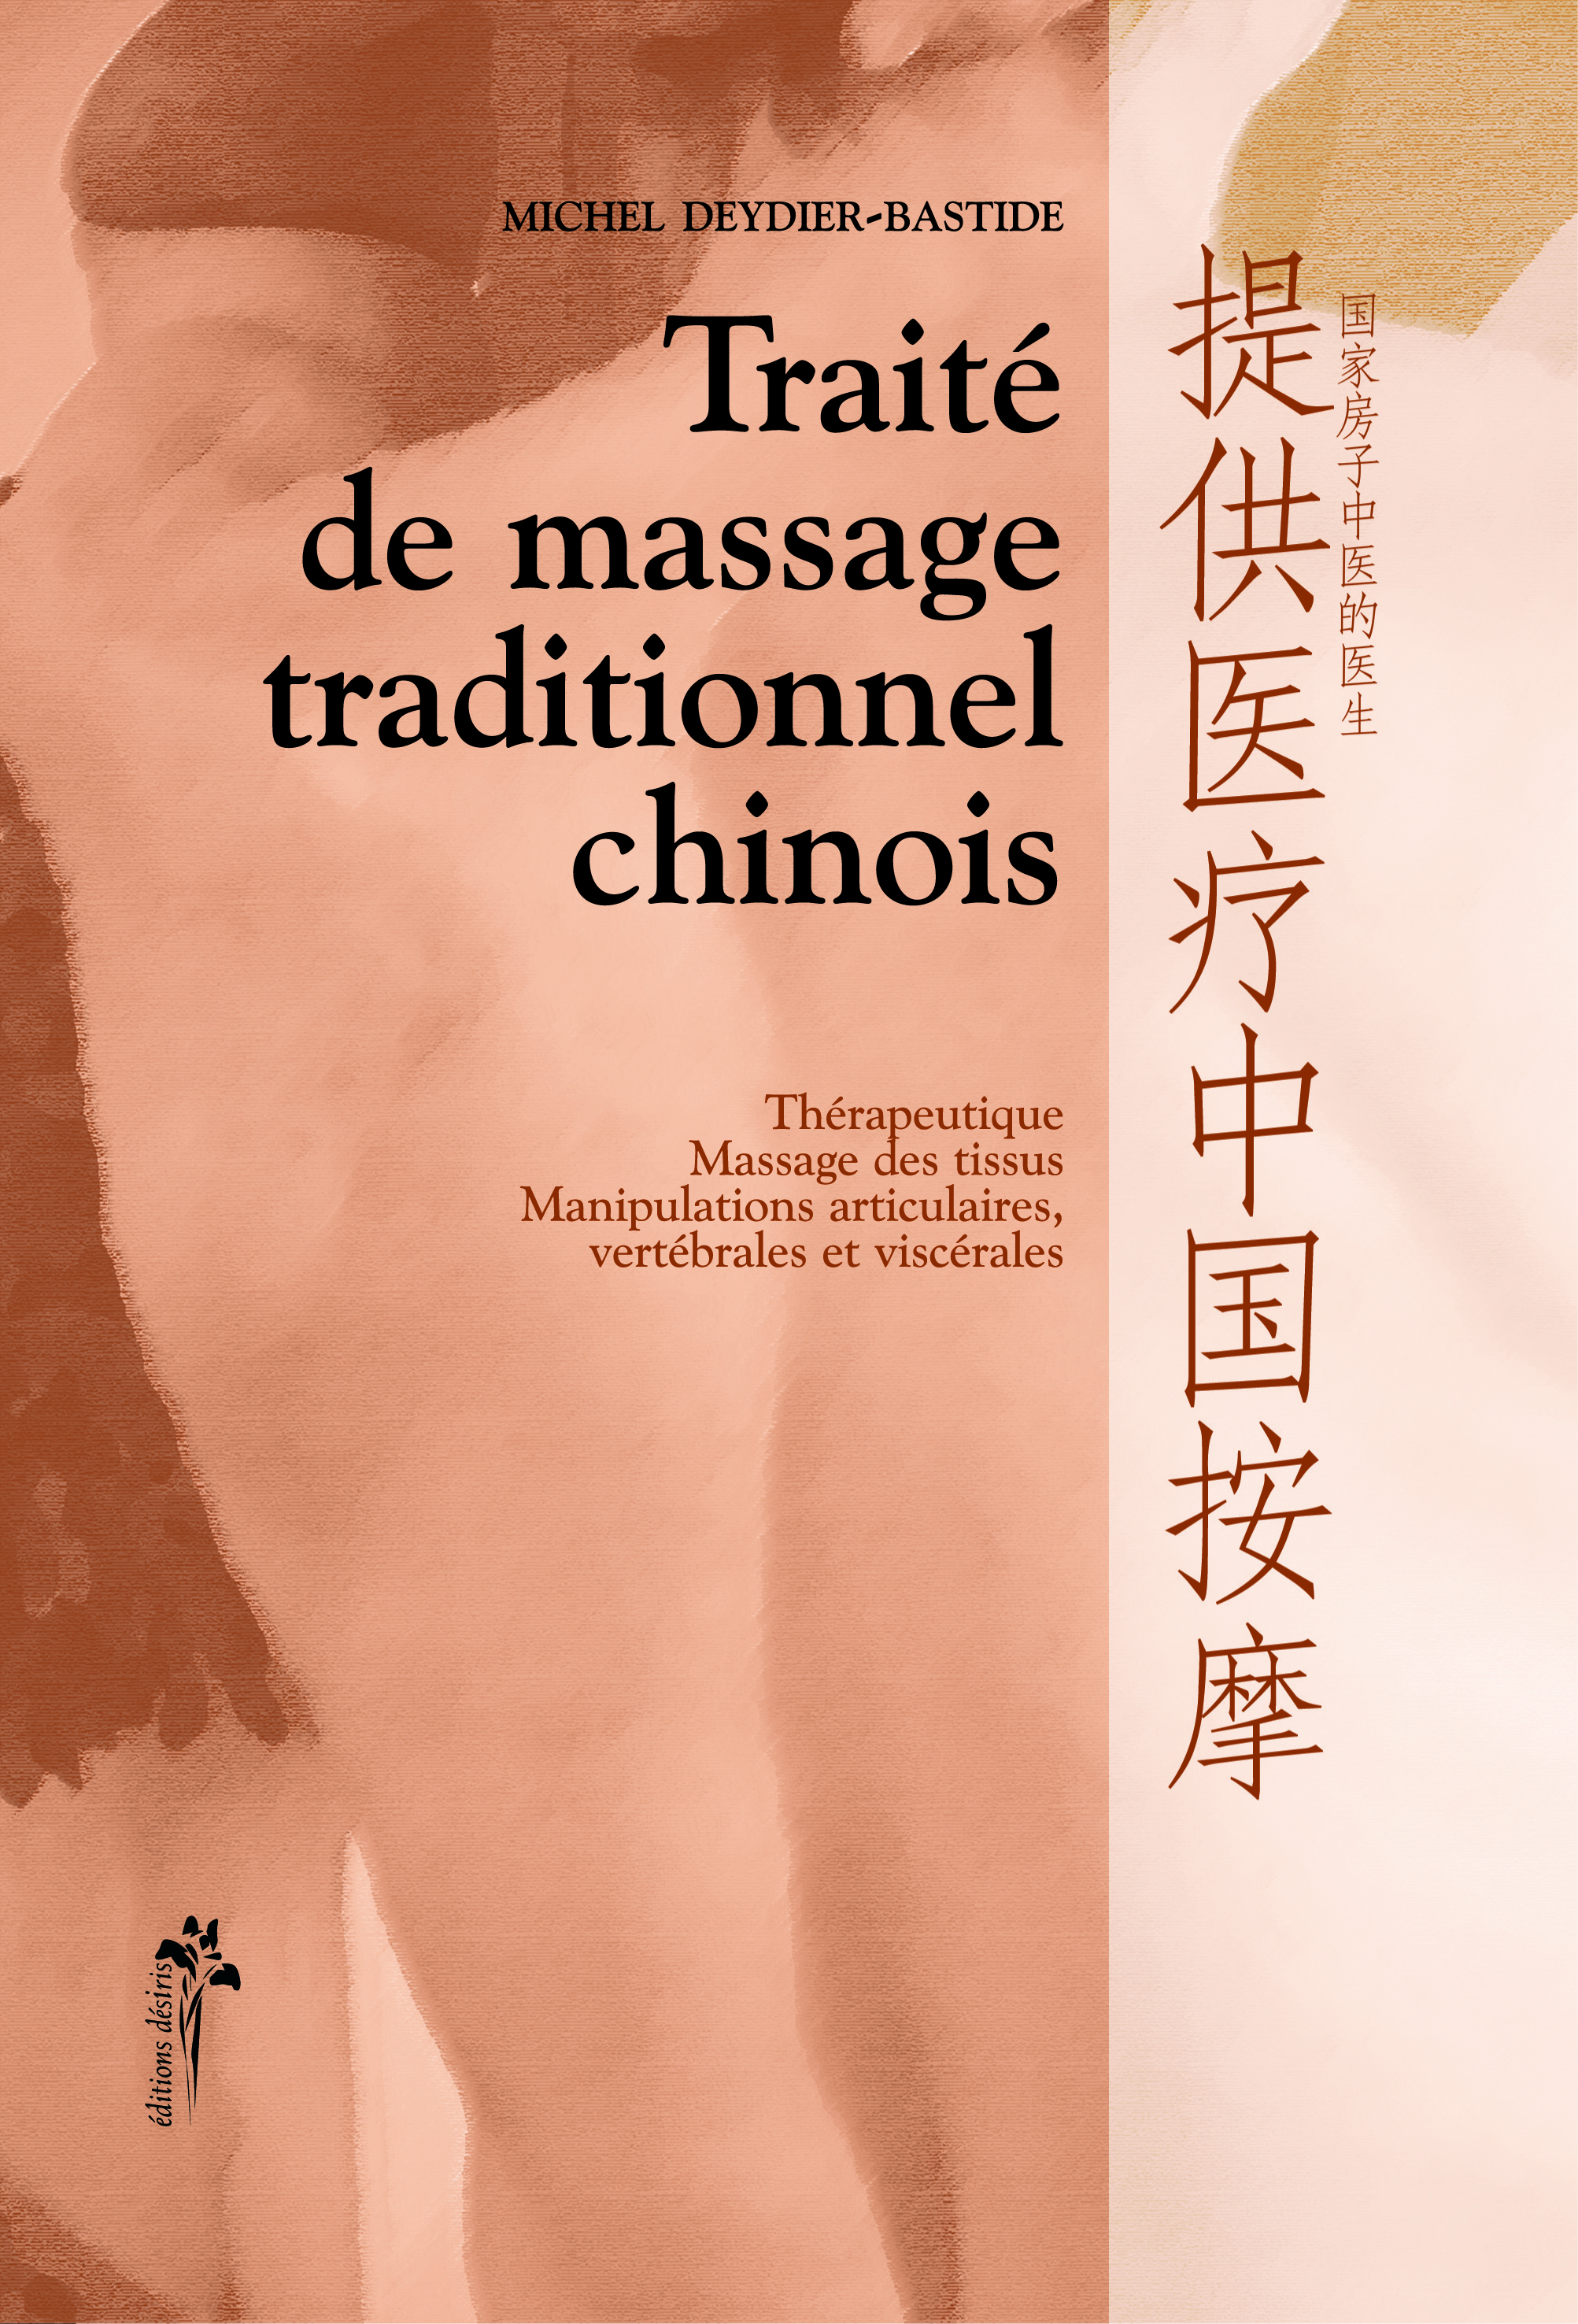 TRAITE DE MASSAGE TRADITIONNEL CHINOIS